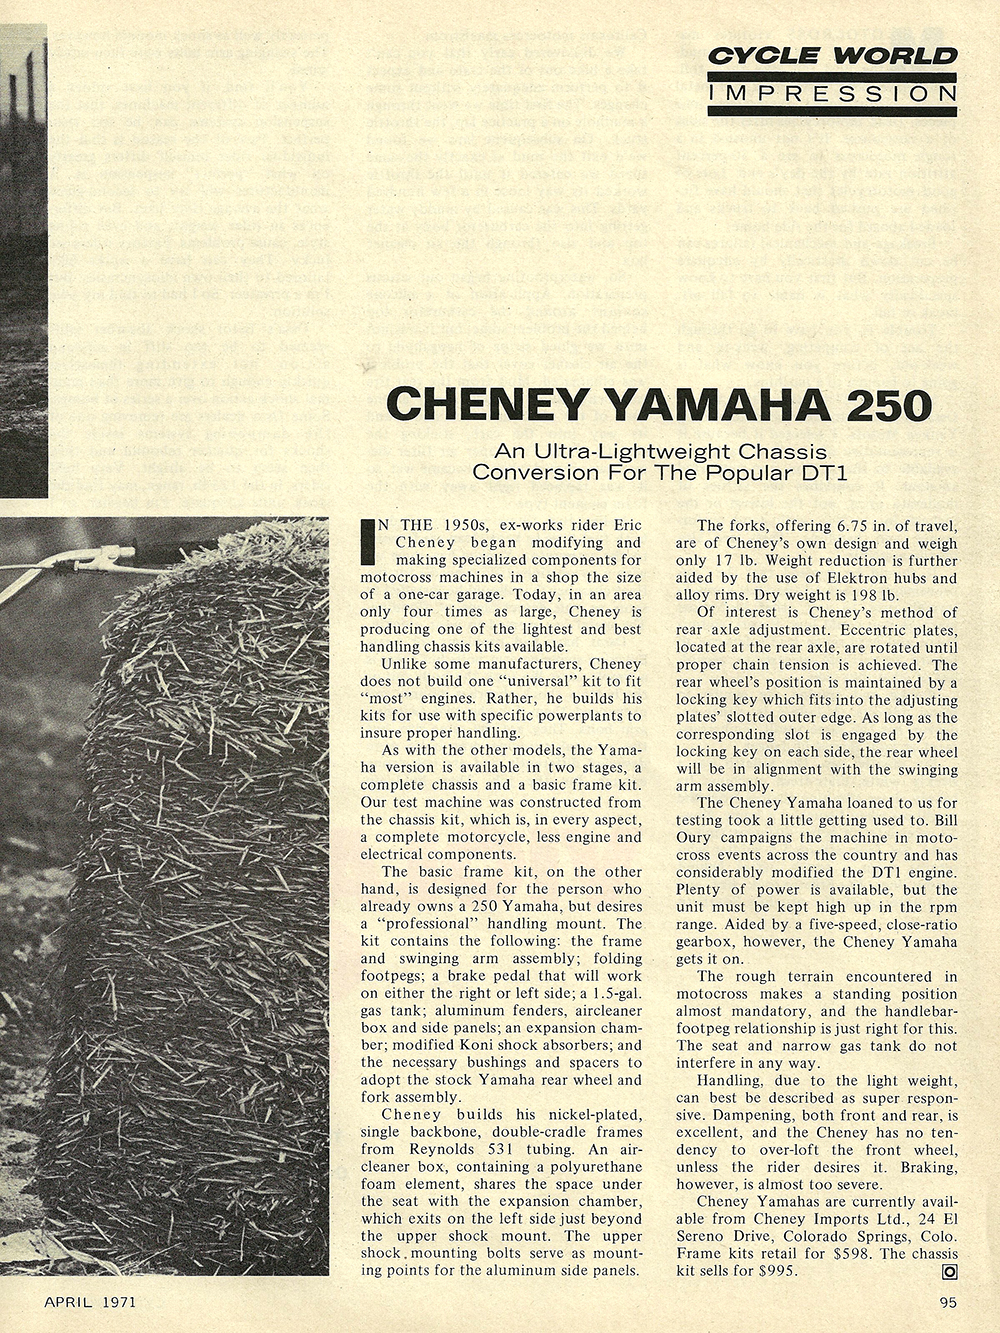 1971 Yamaha Cheney DT1 250 impression 02.jpg